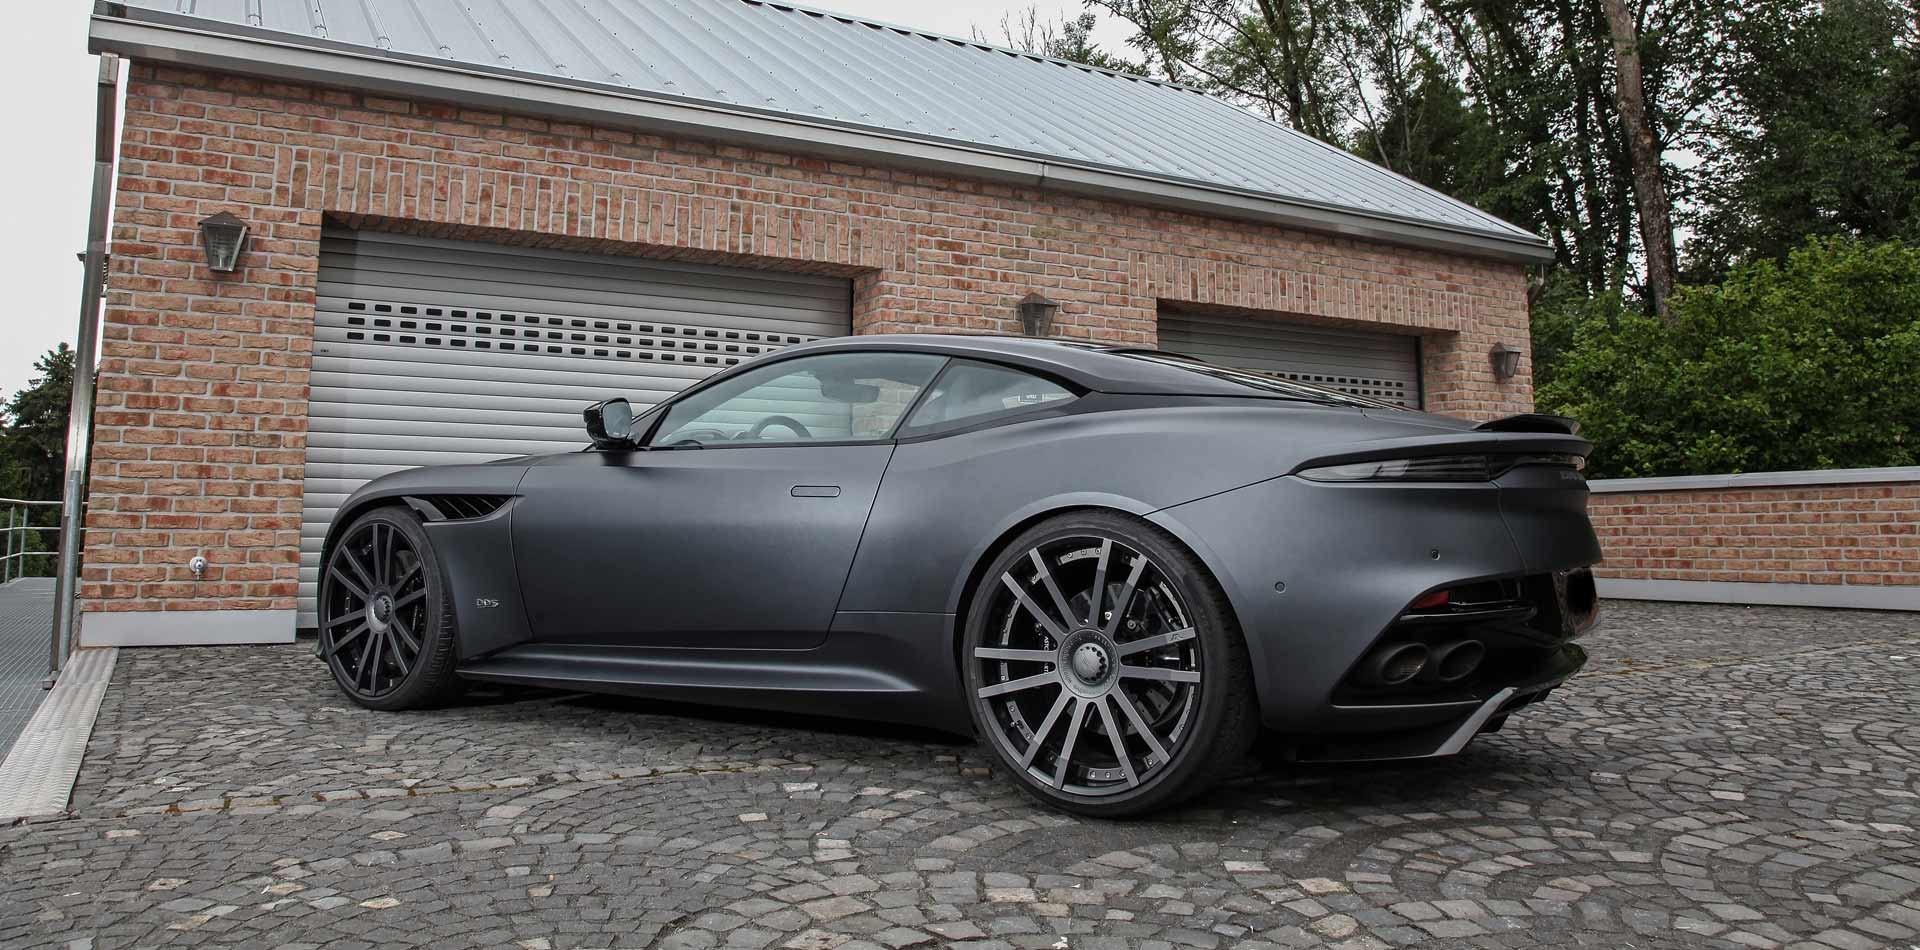 Aston-Martin-DBS-Superleggera-by-Wheelsandmore-3